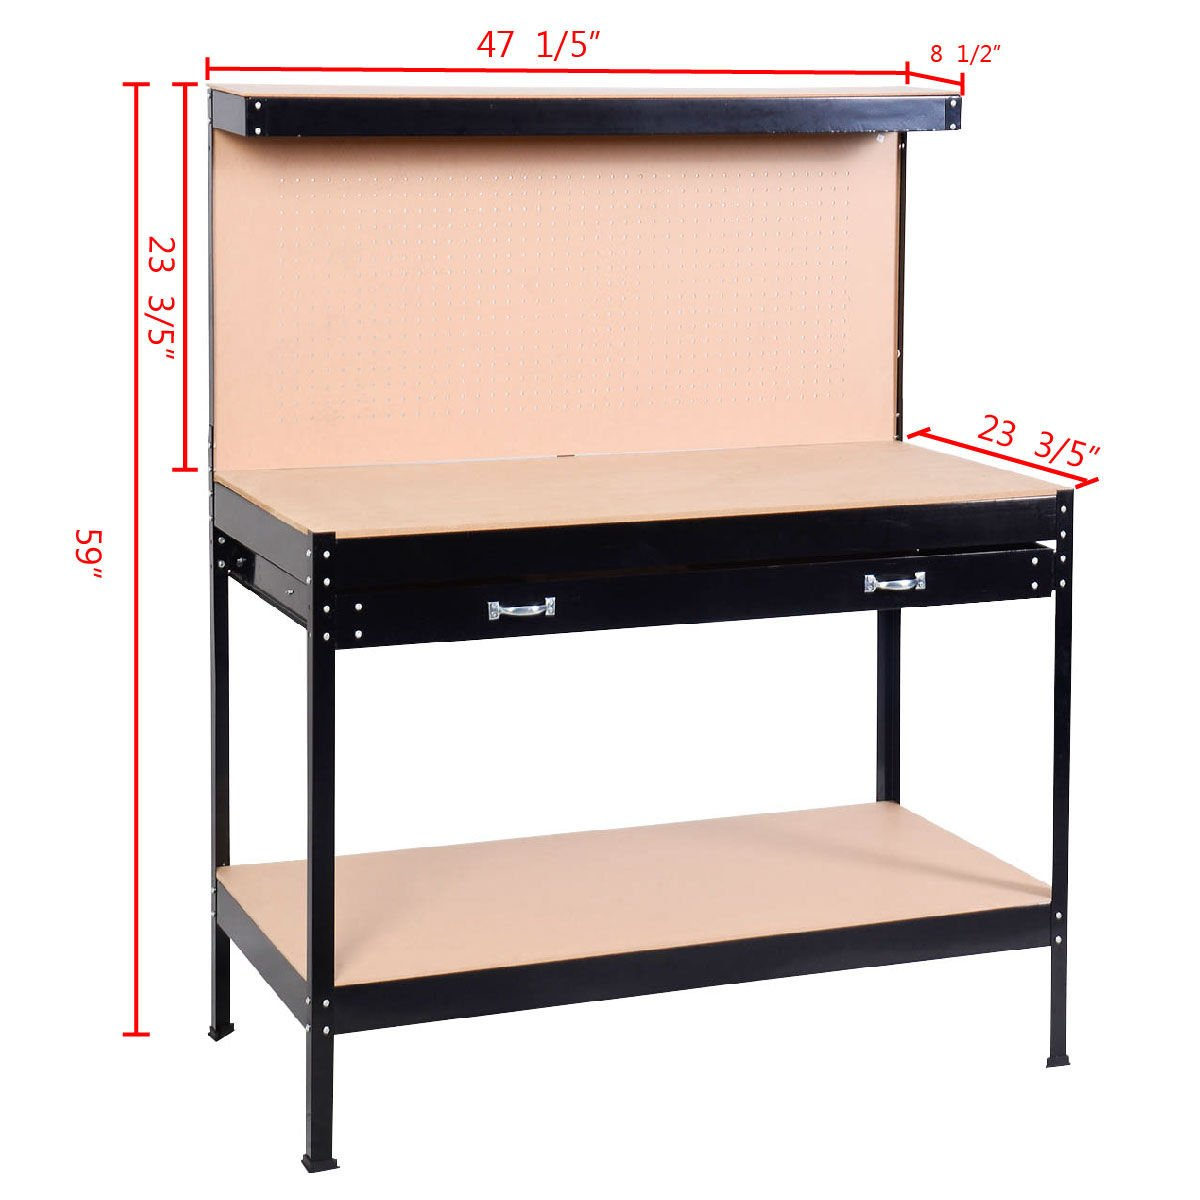 Work Bench Tool Storage Steel Frame Tool Workshop Table W/ Drawer and Peg Boar by allgoodsdelight365 (Image #1)